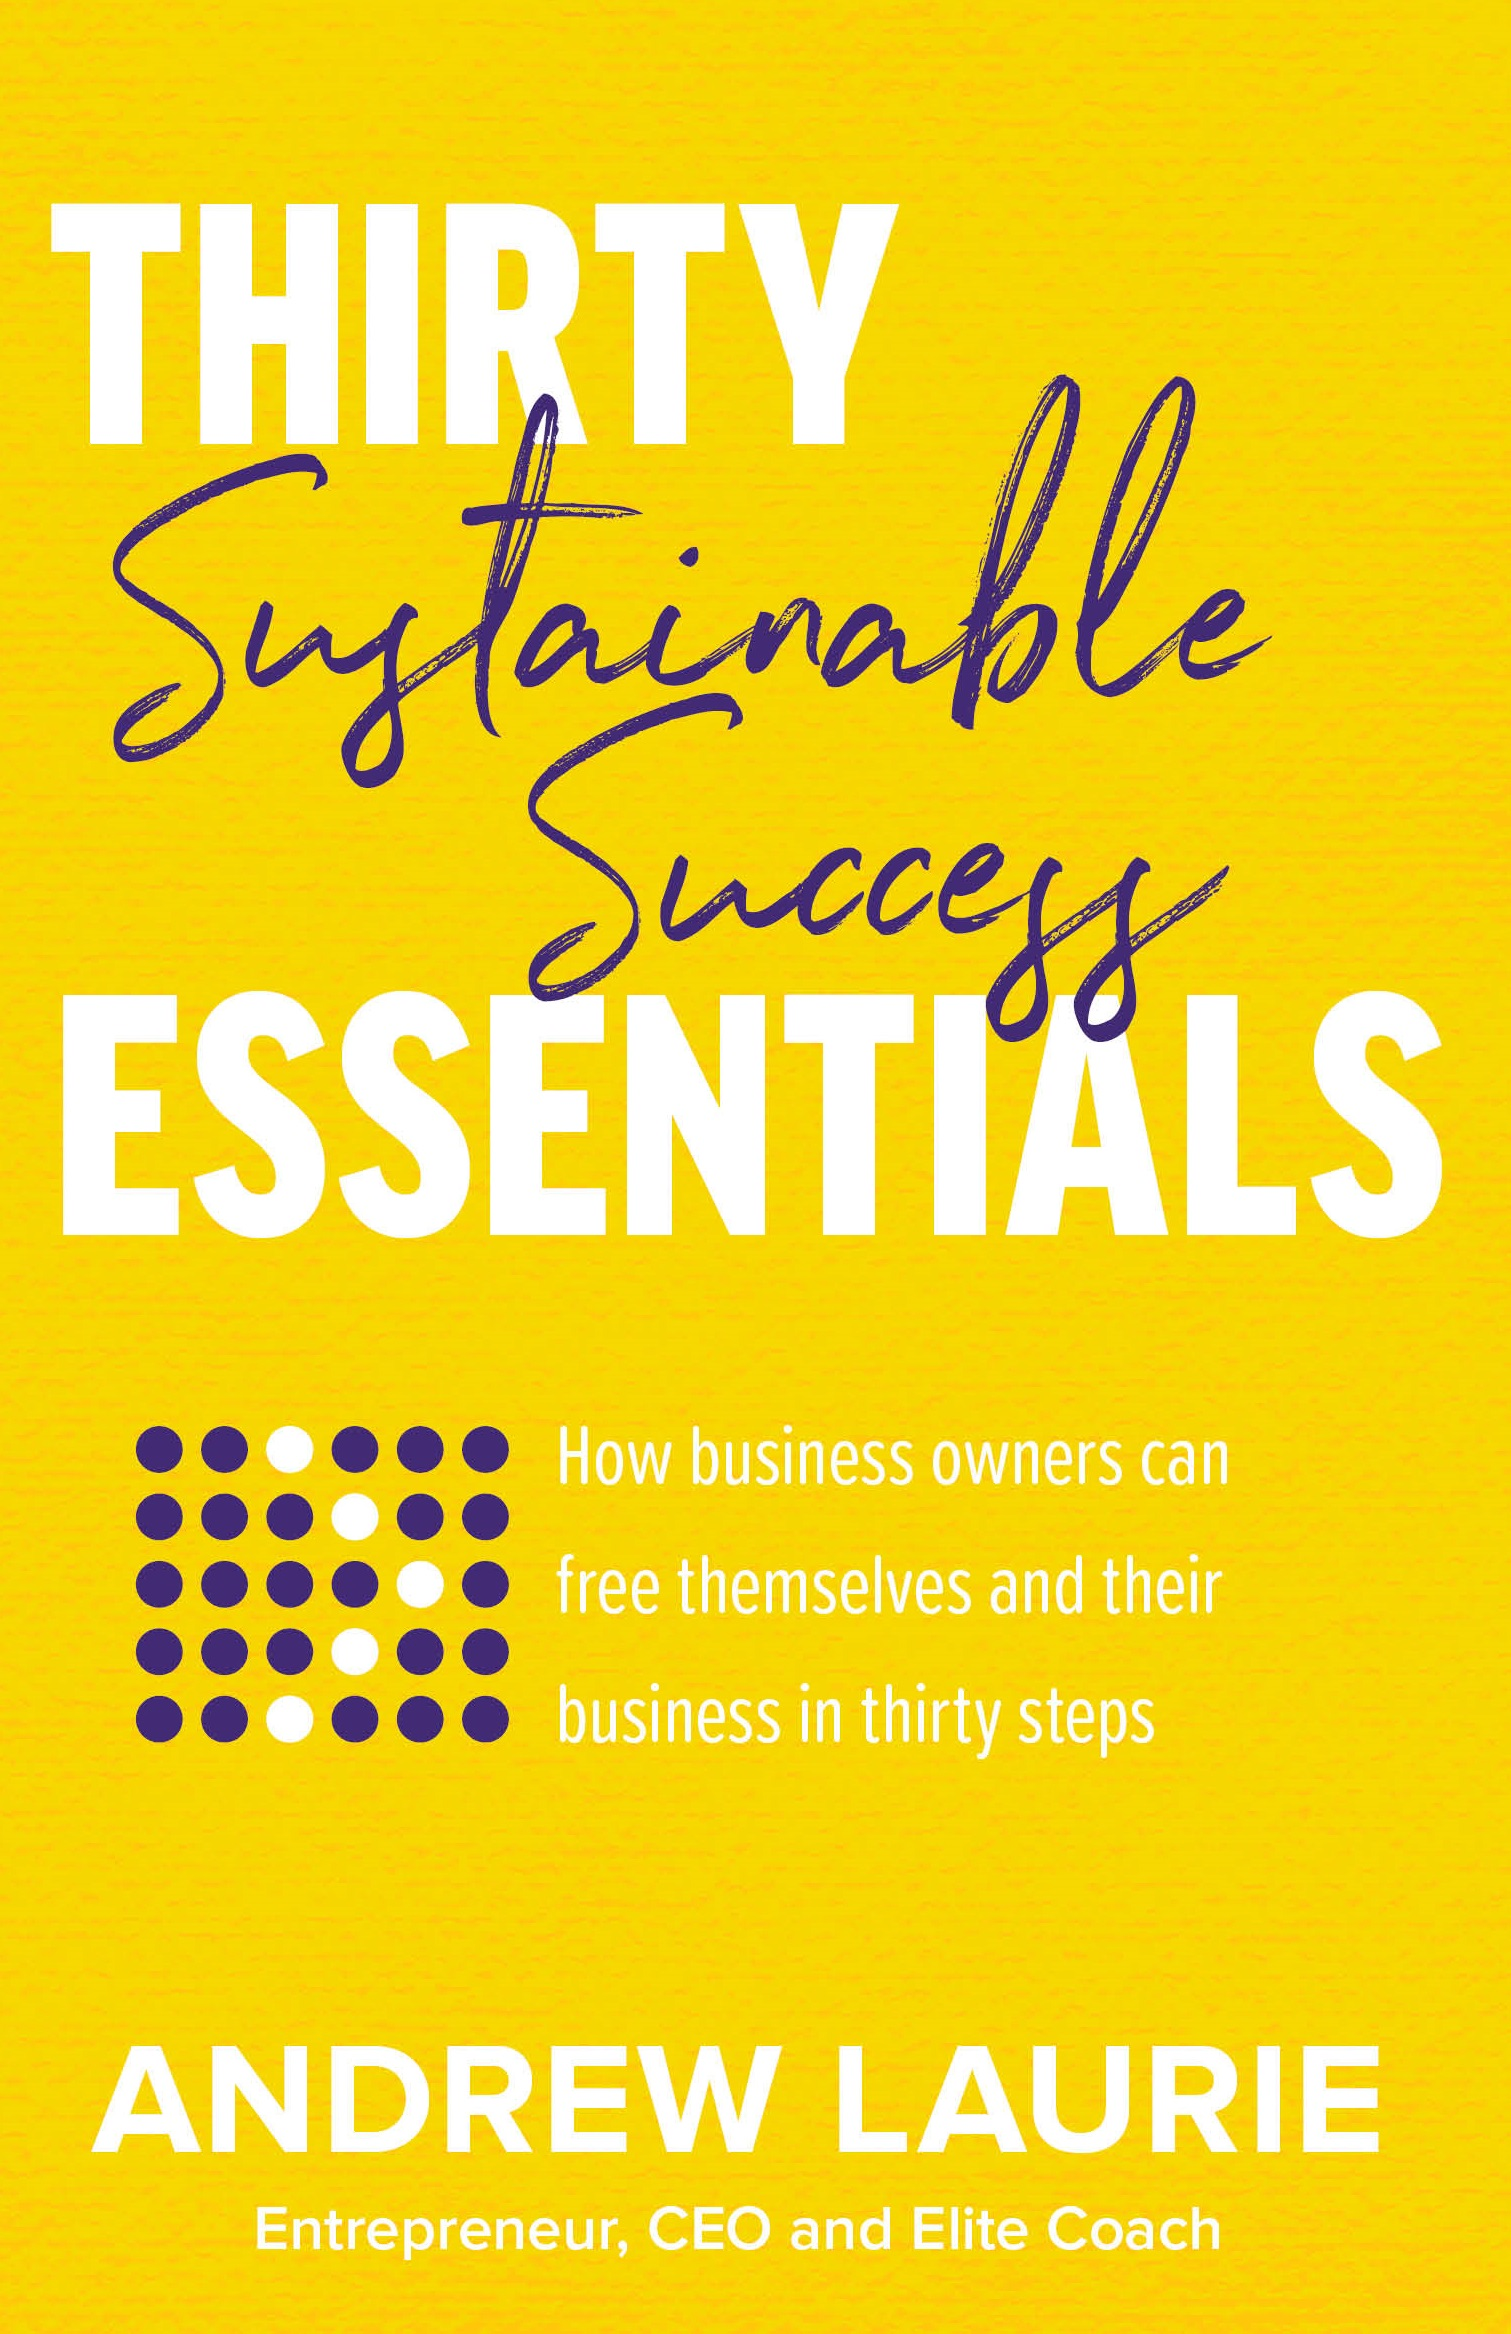 Thirty Essentials Sustainable Success_cover_5A. high res.jpg